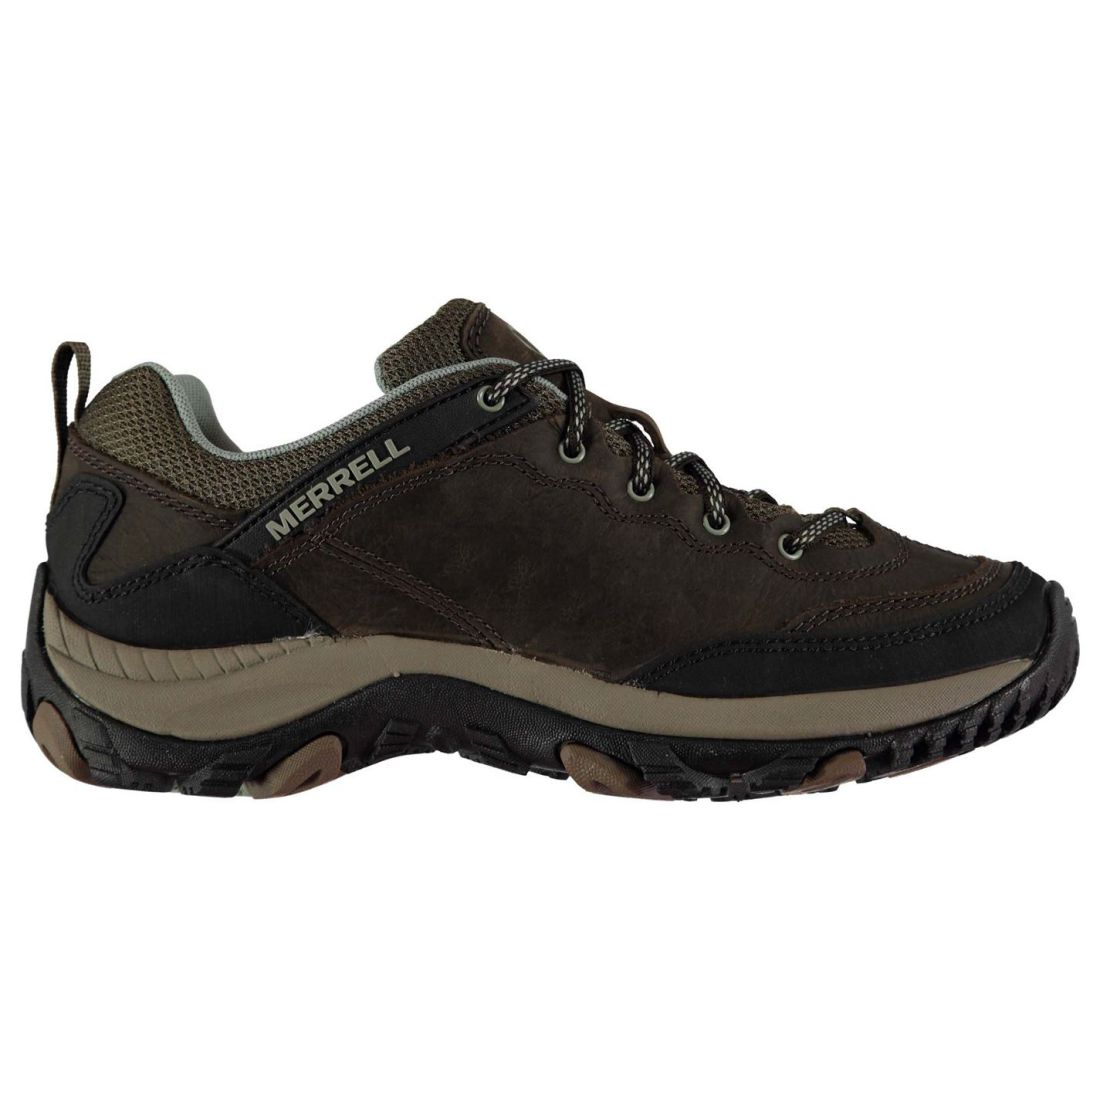 Merrell Salida Trek Walking shoes Ladies Non Water Repellent Laces Fastened